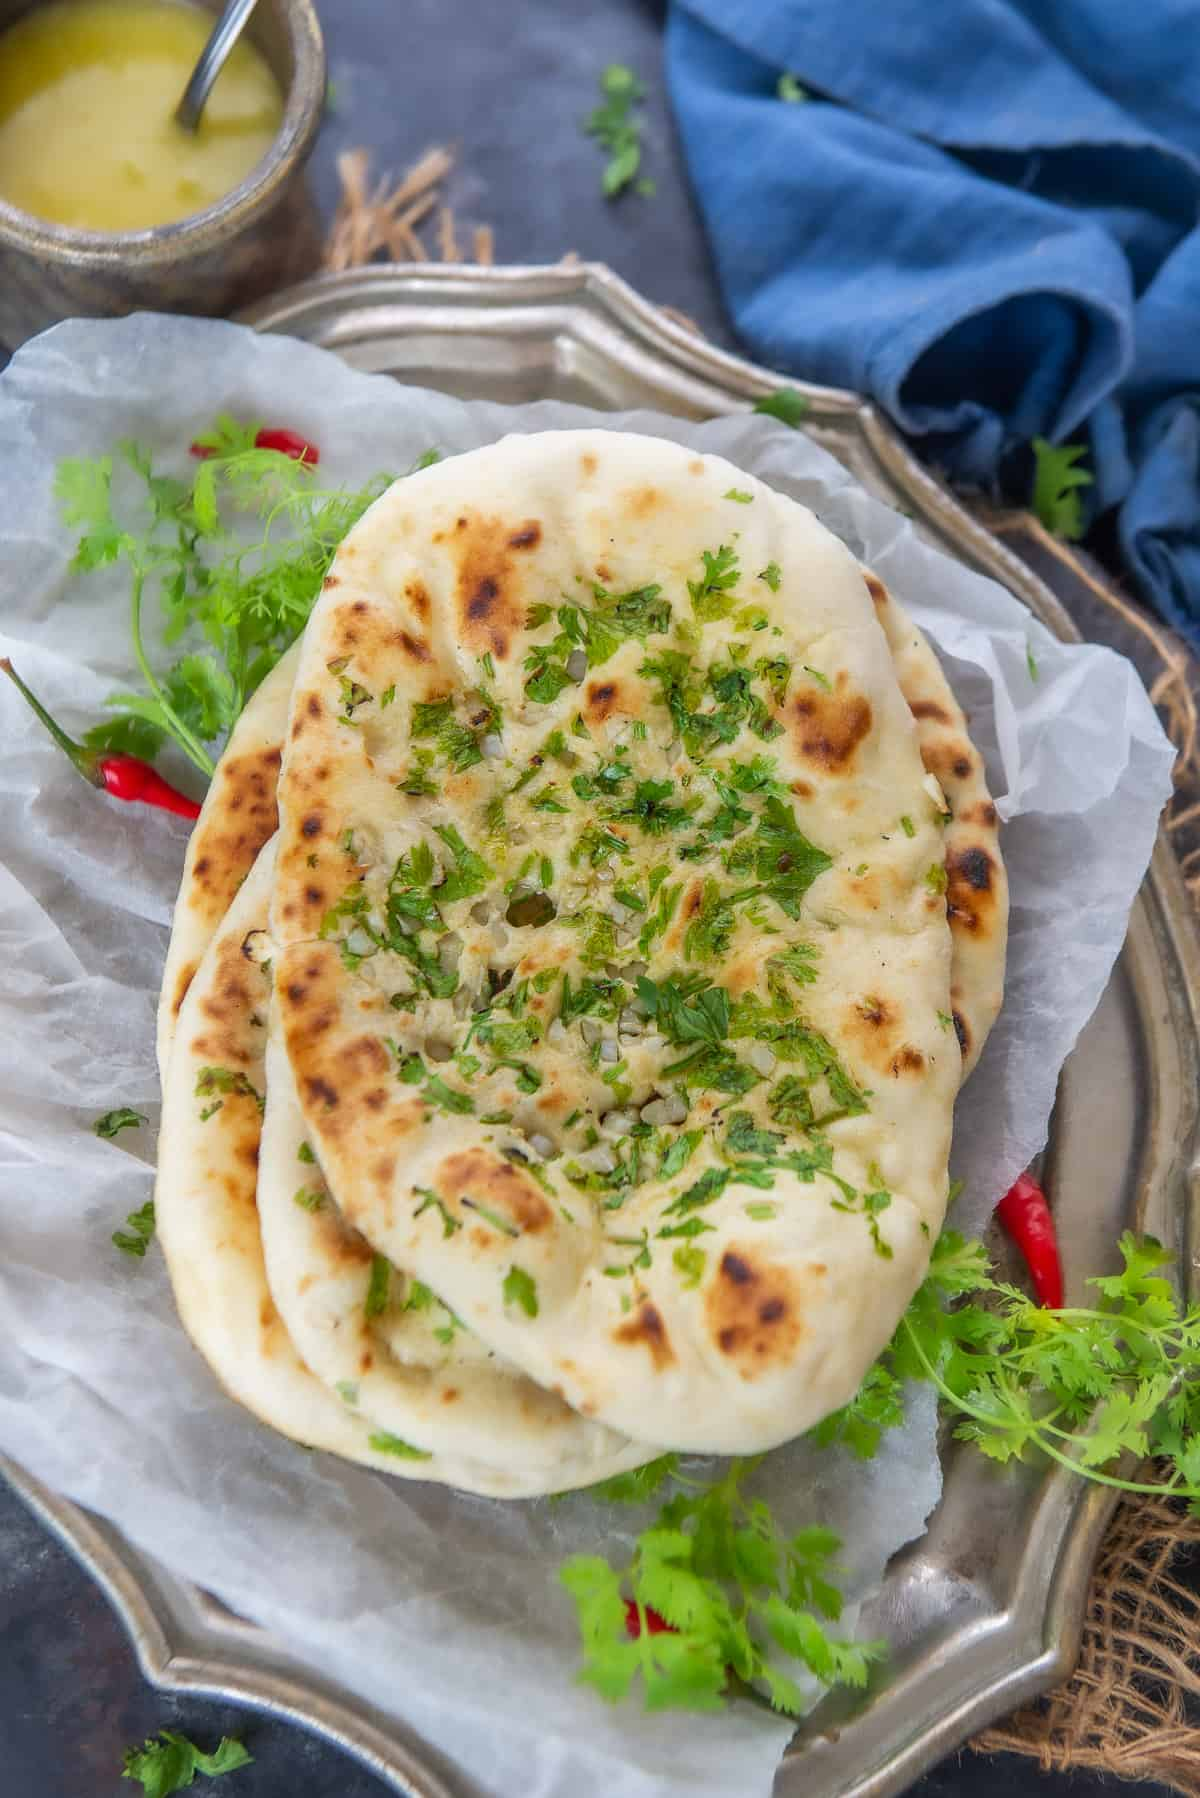 Garlic Naan served on a plate.